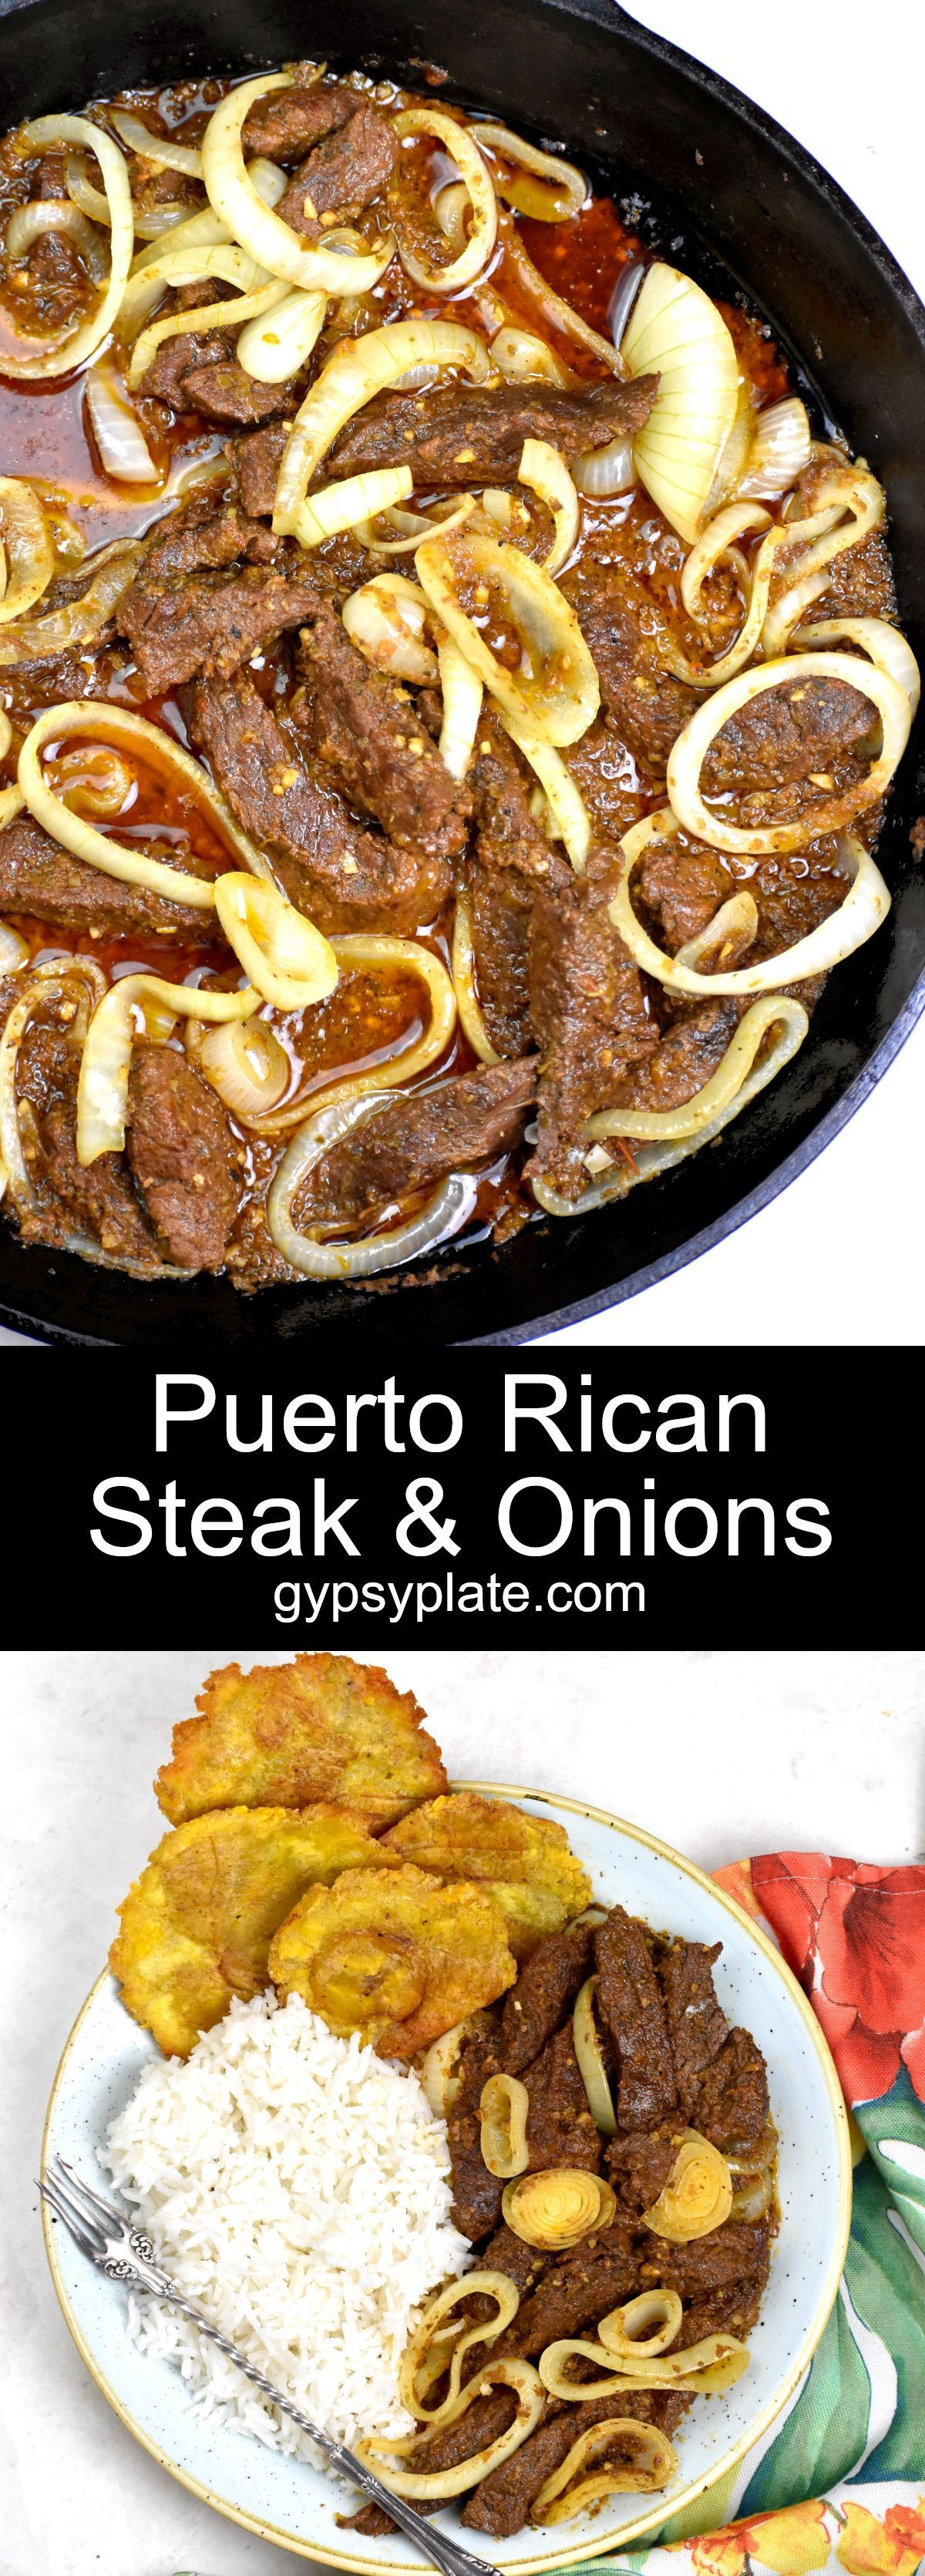 Give your beef a Latin makeover with this great Puerto Rican recipe. These steak and onions, aka bistec encebollado, are packed with tropical flavors!